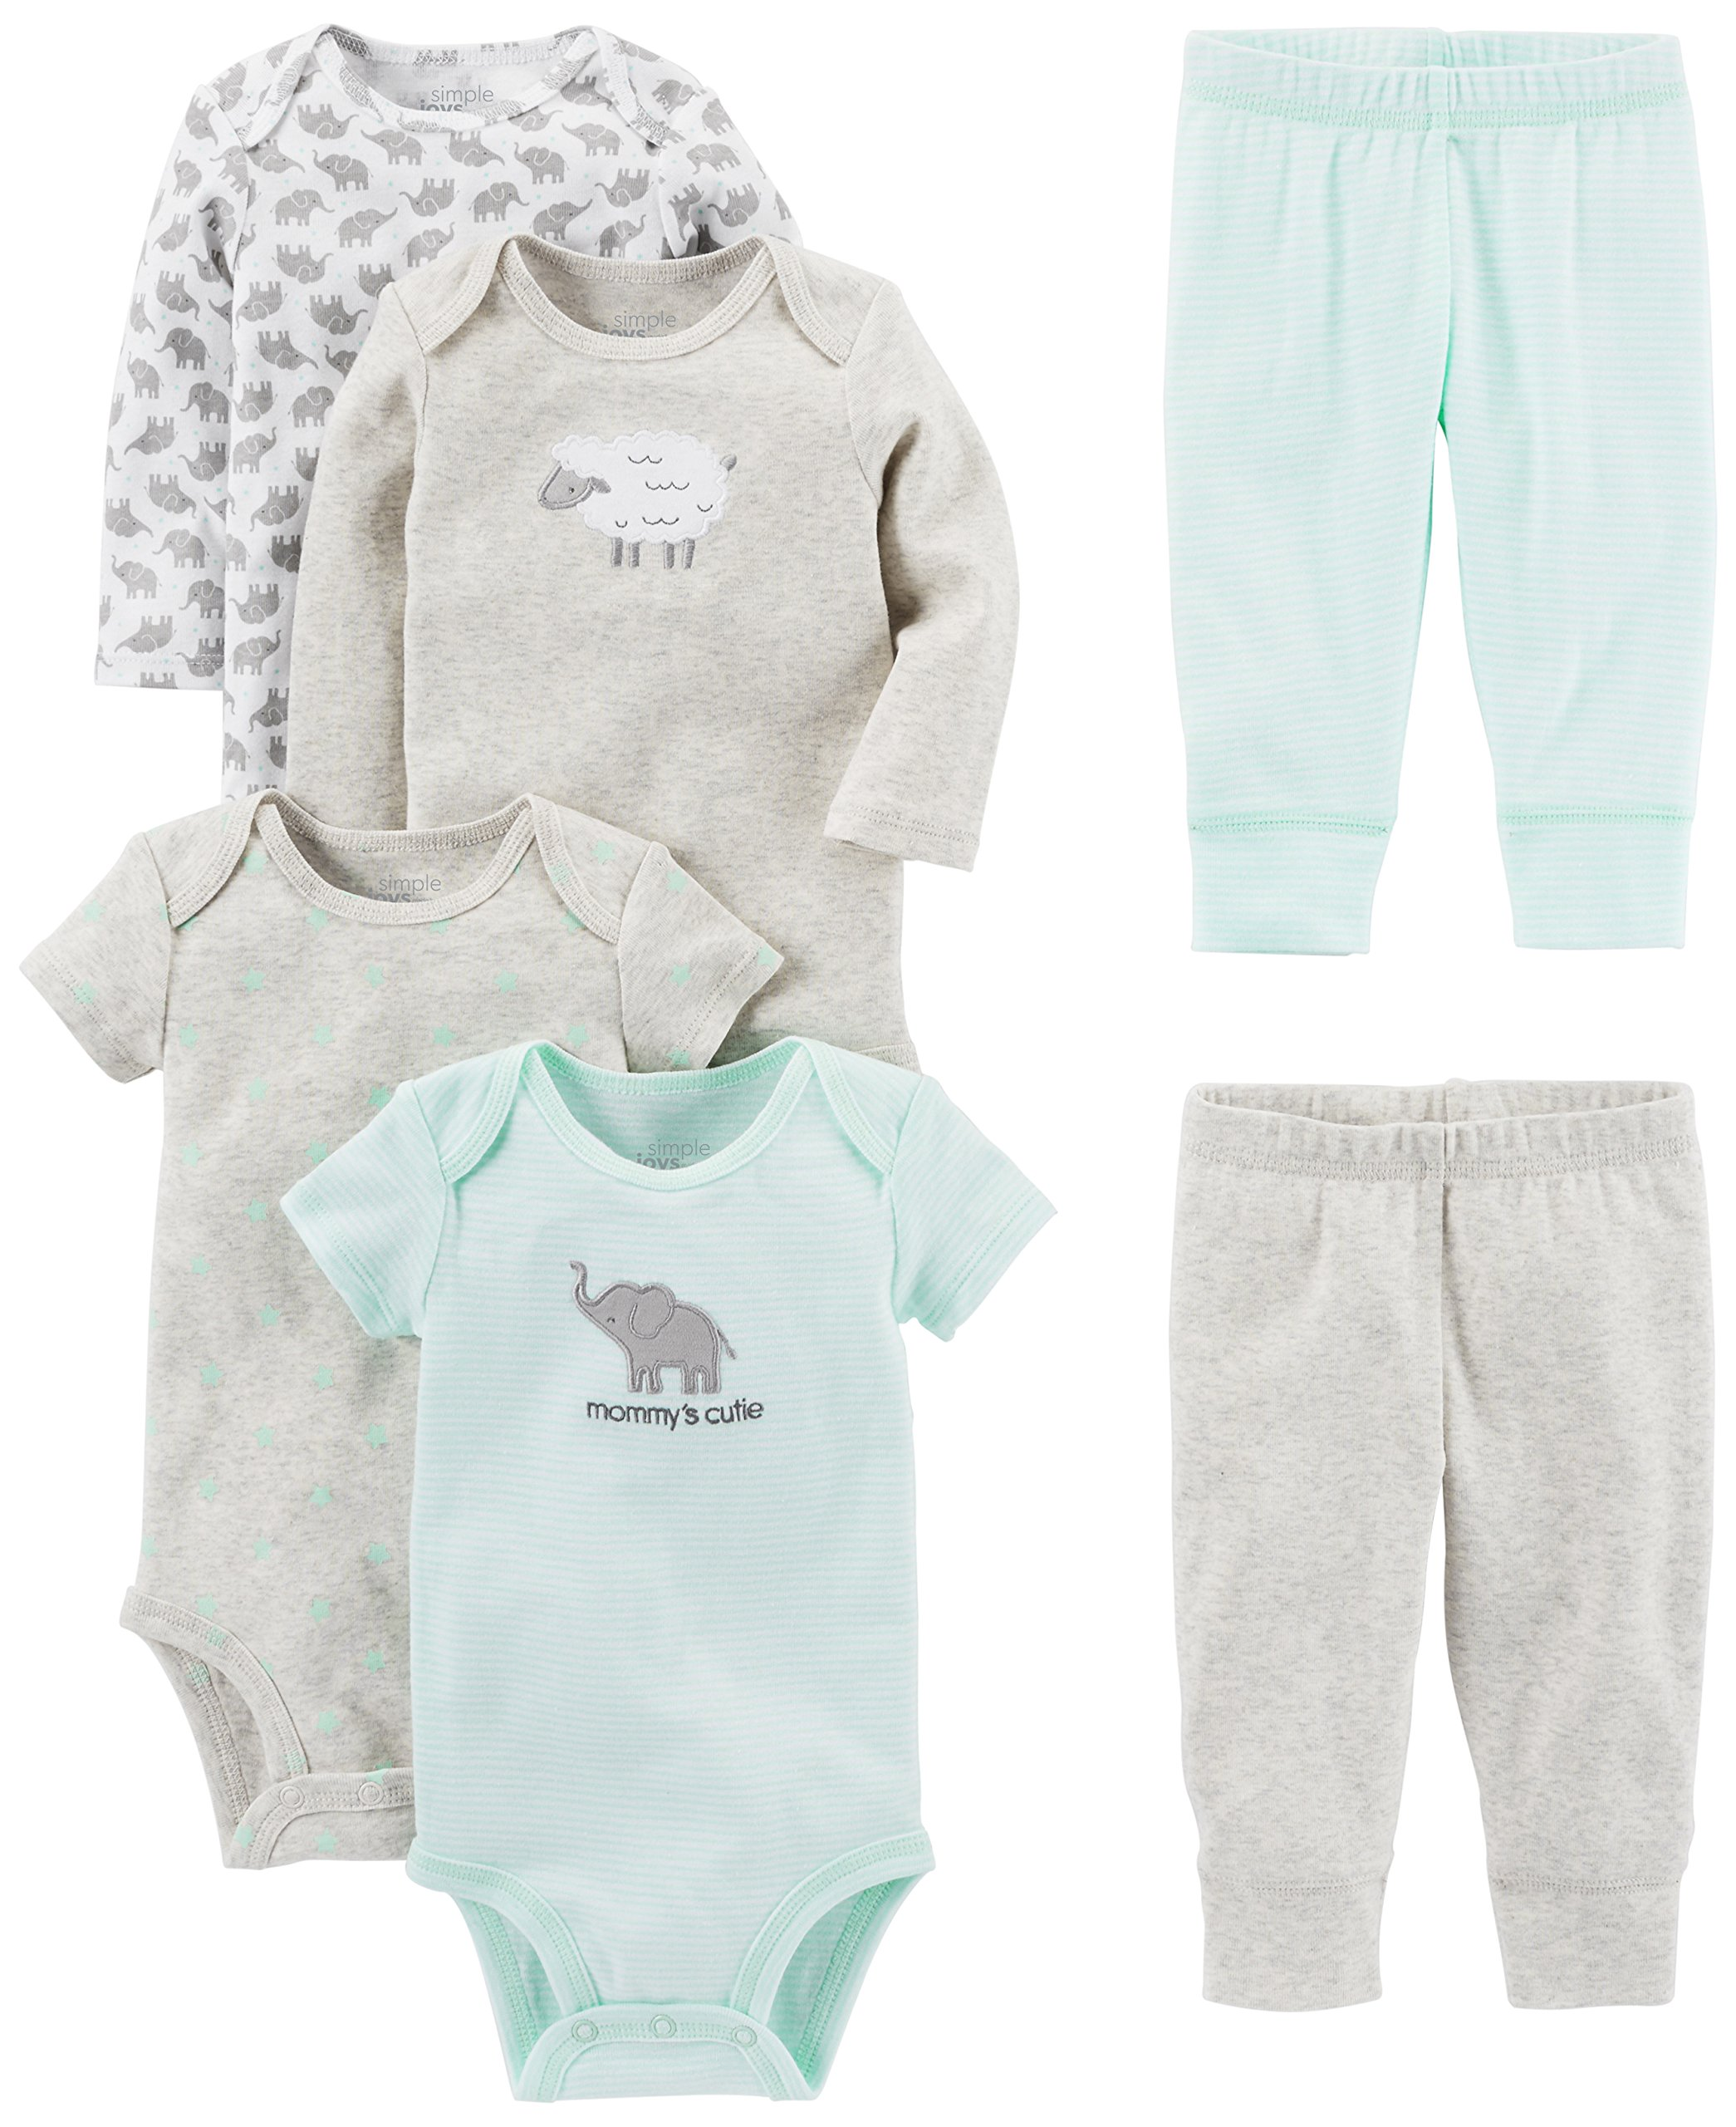 Simple Joys by Carter's Baby 6-Piece Little Character Set, Gray Lamb, 0-3 Months